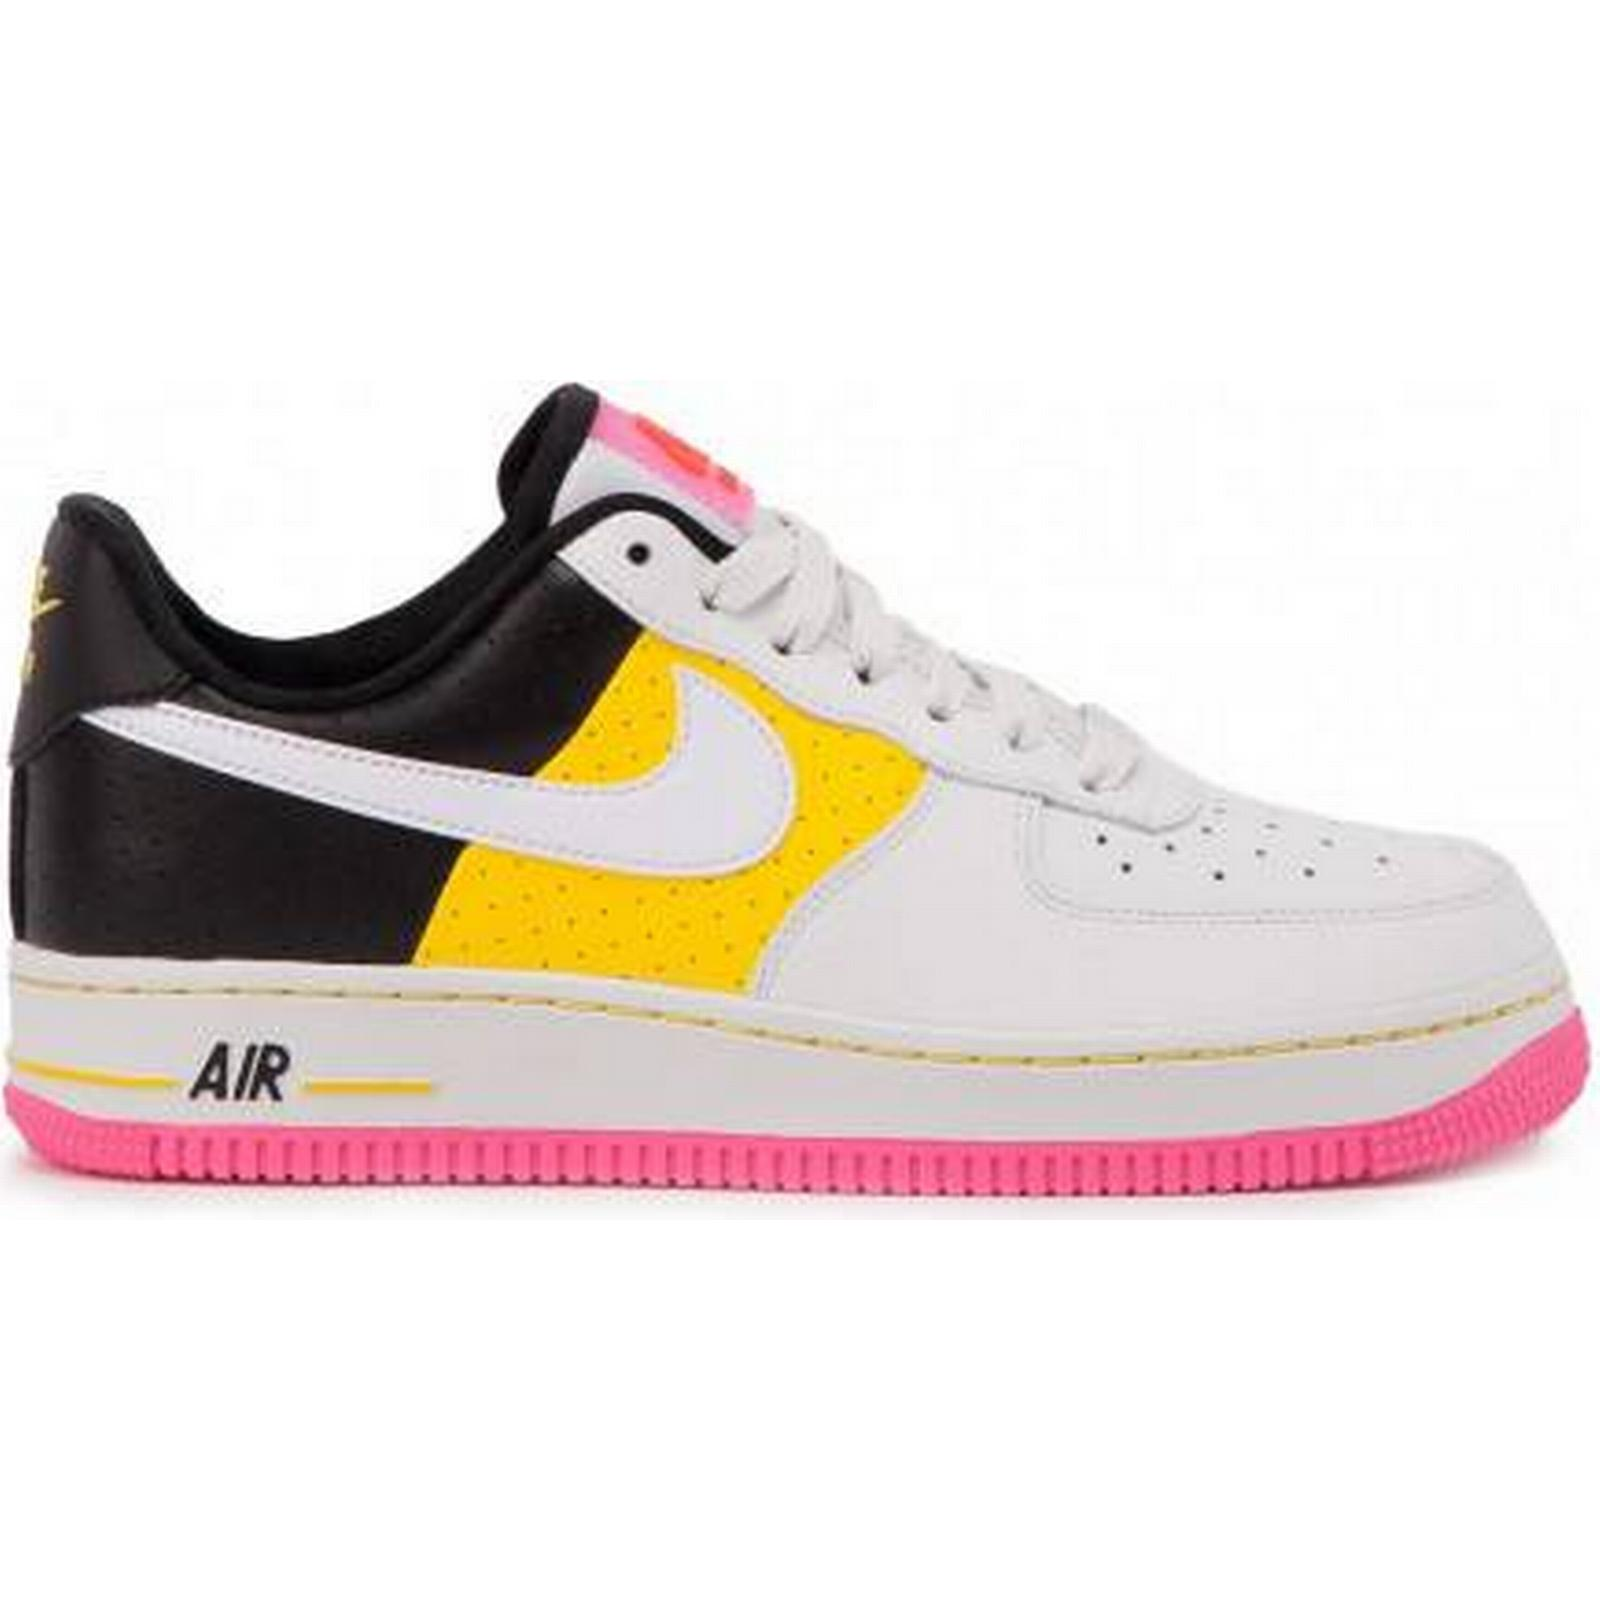 Nike WMNS Air Force 1 (White) Low '07 SE Moto (White) 1 412d59